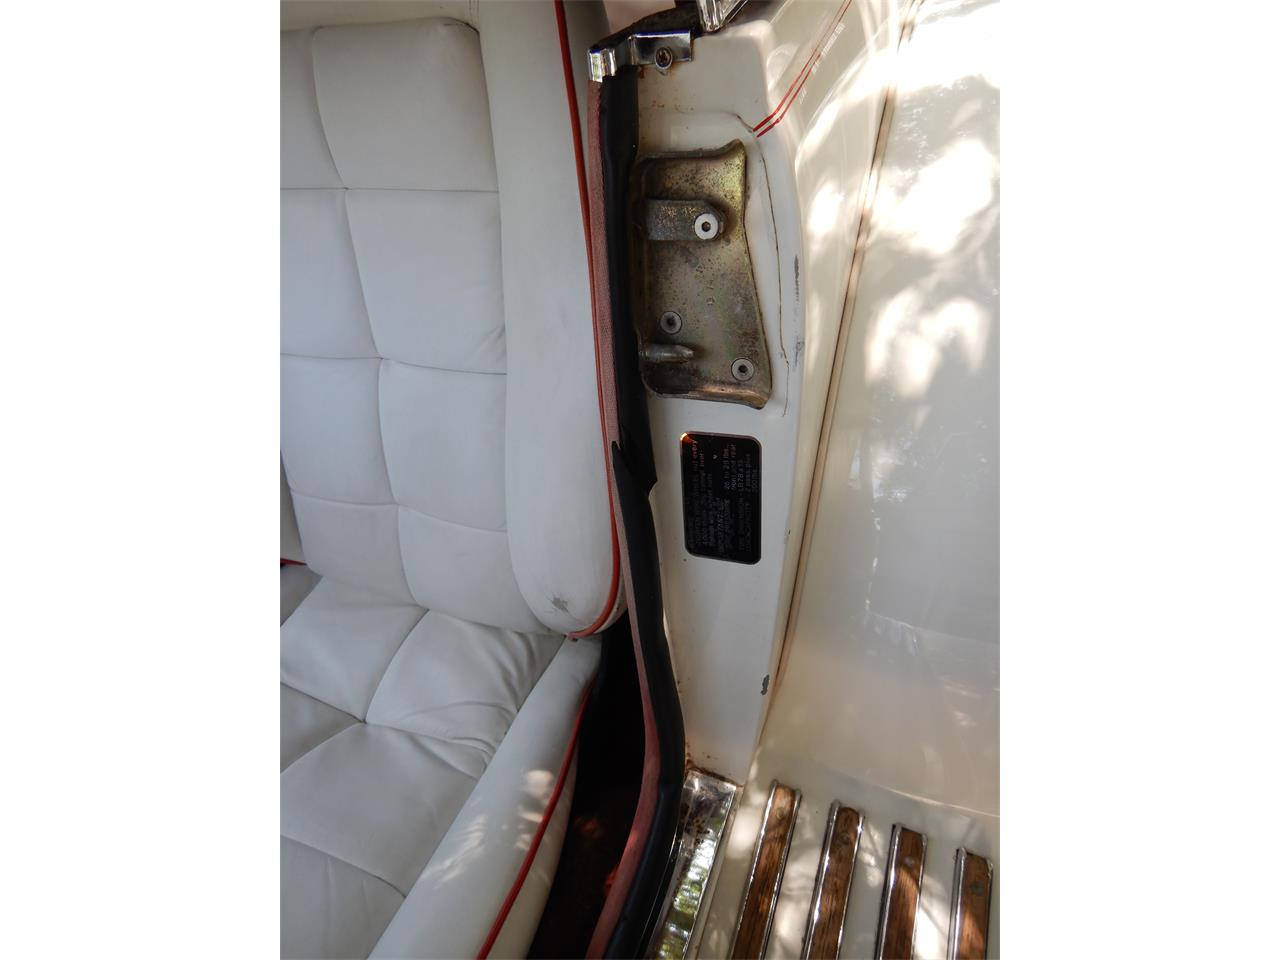 Large Picture of 1978 Clenet Series I located in woodland hills California - $32,900.00 - NOHC